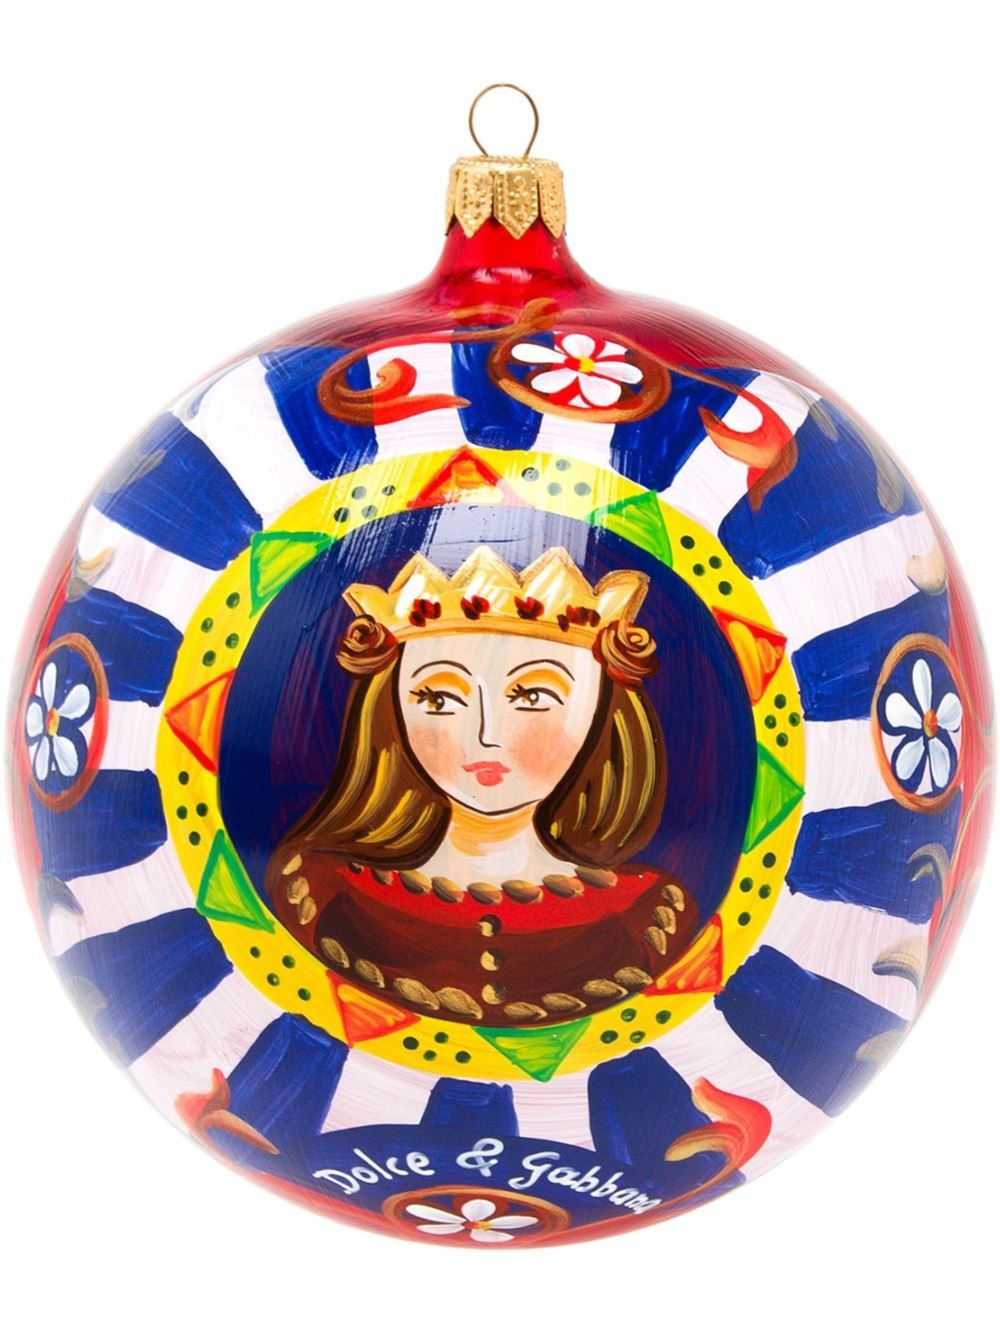 Painted Glass Bauble - Red Dolce & Gabbana 8QS6pzC2